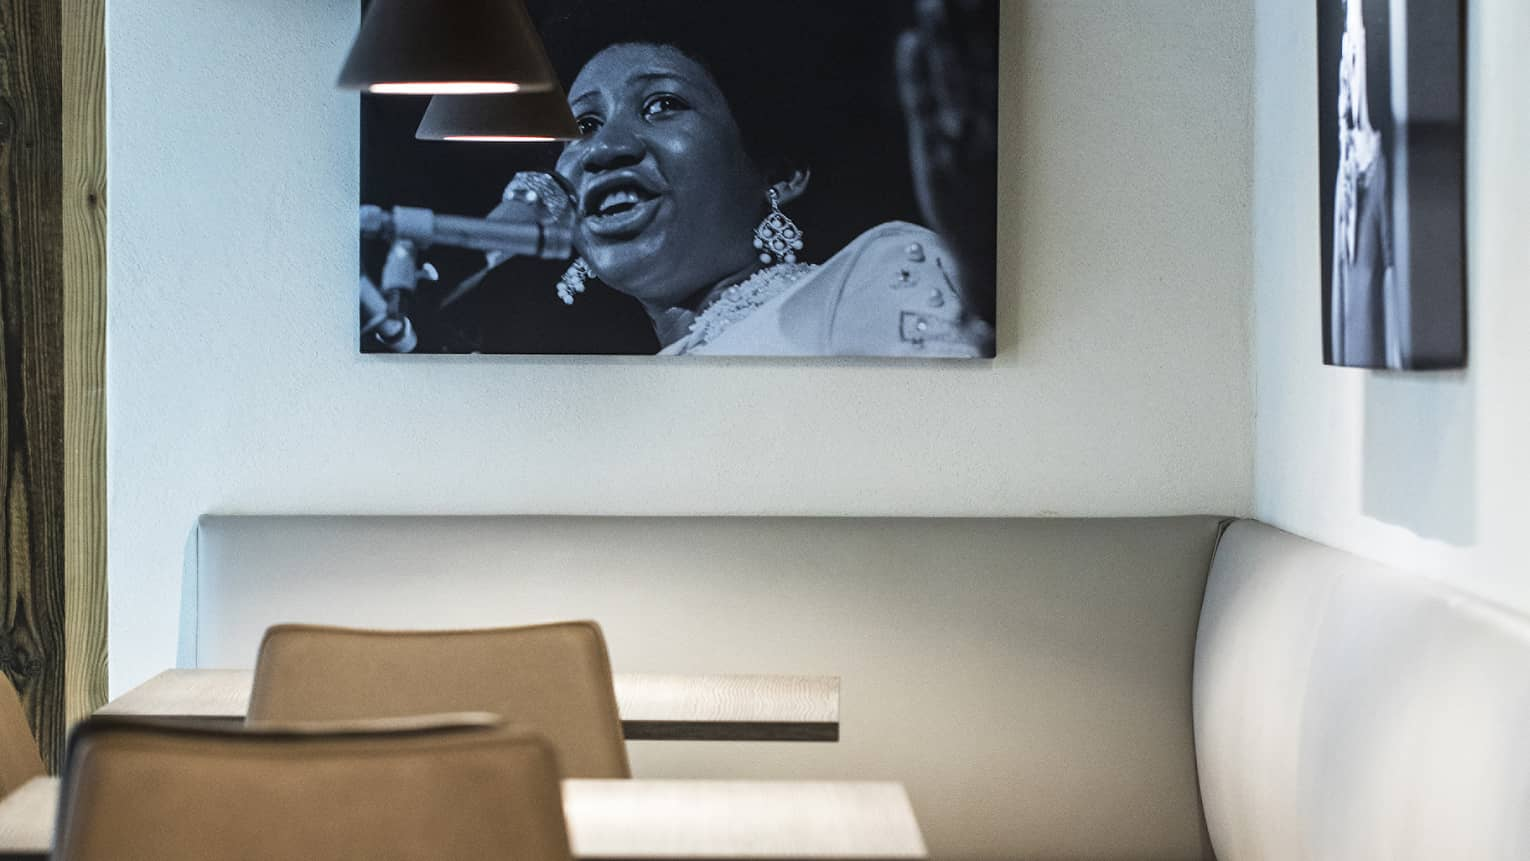 Two small tables with chairs and white banquette in modern bar with black fixtures, white walls and a hanging black-and-white portrait of Aretha Franklin